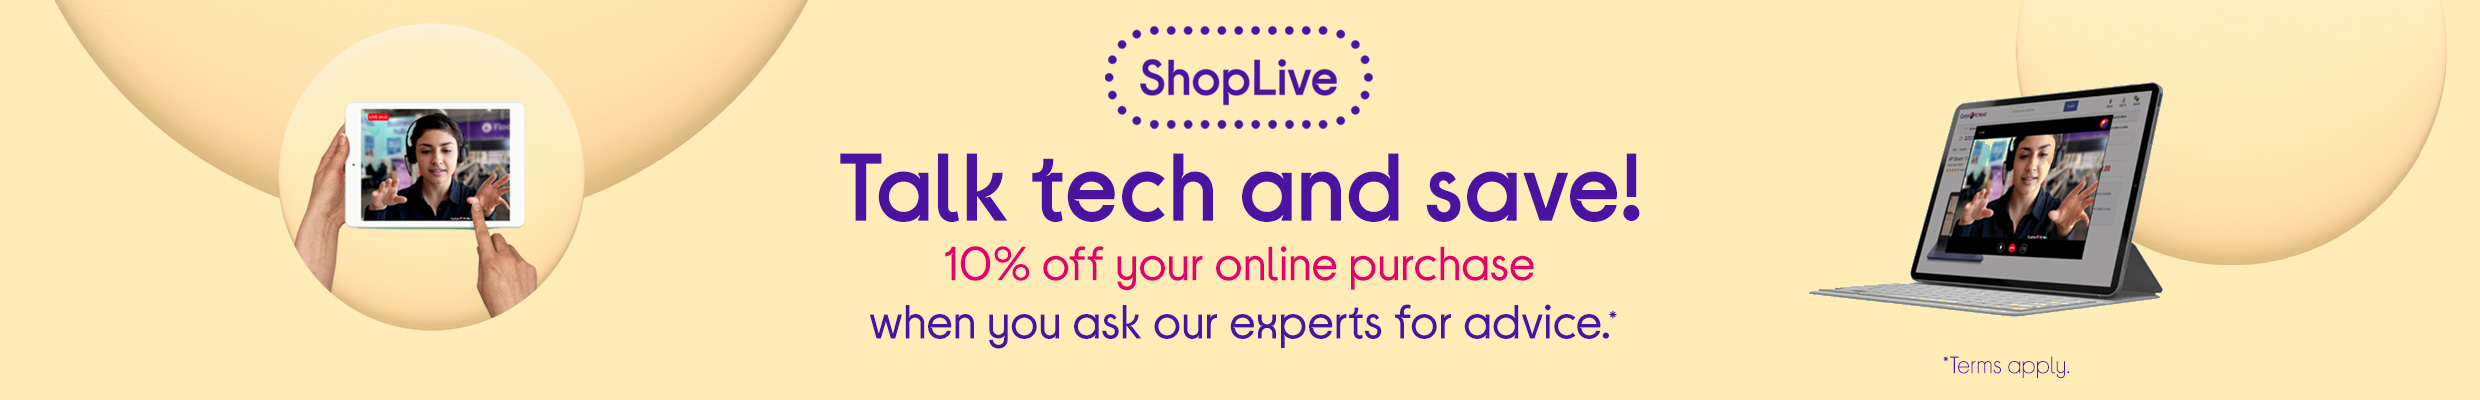 ShopLive Promo - Chat to our experts